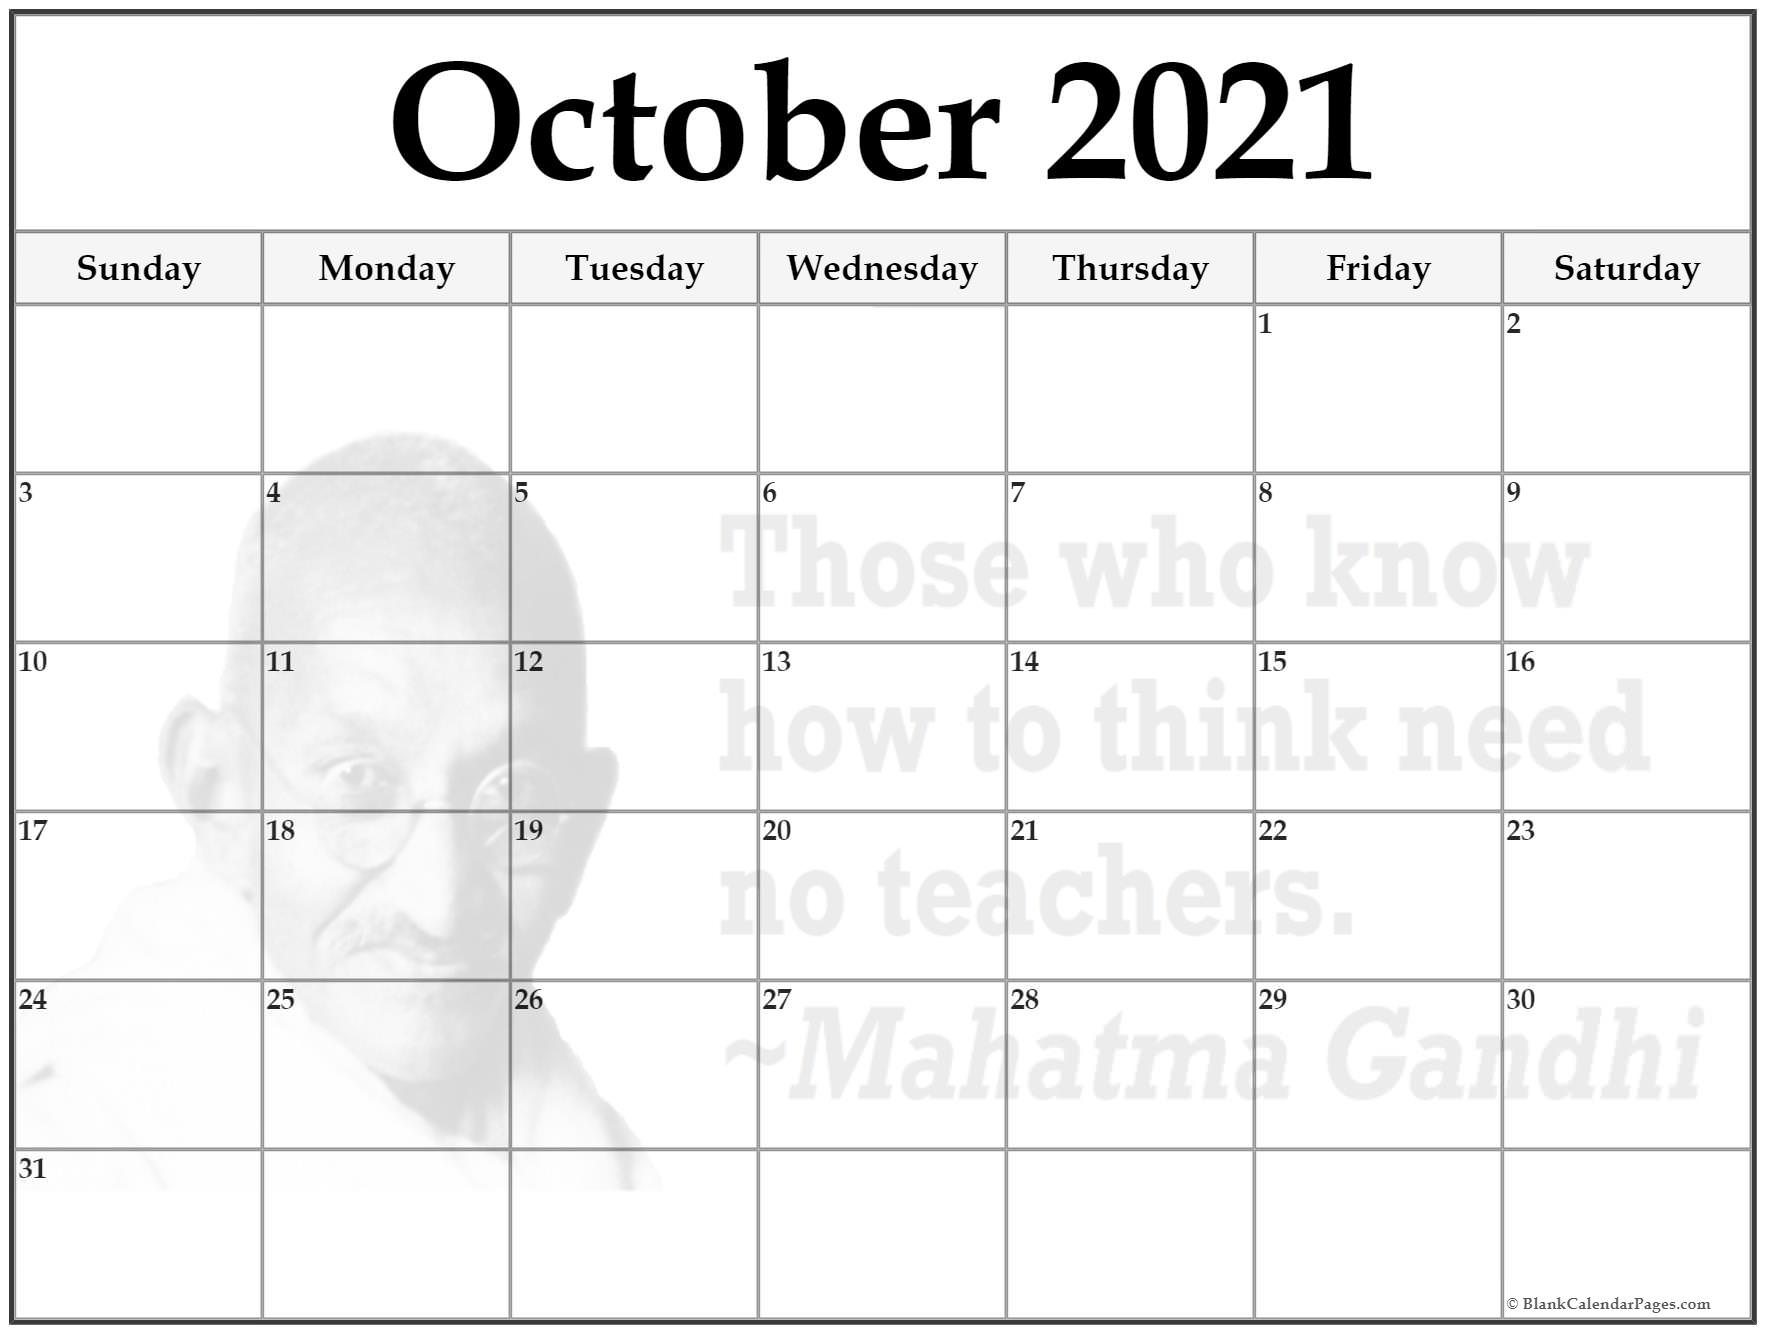 October 2019 monthly calendar template. Those who know how to think need no teachers. ~Mahatma Gandhi